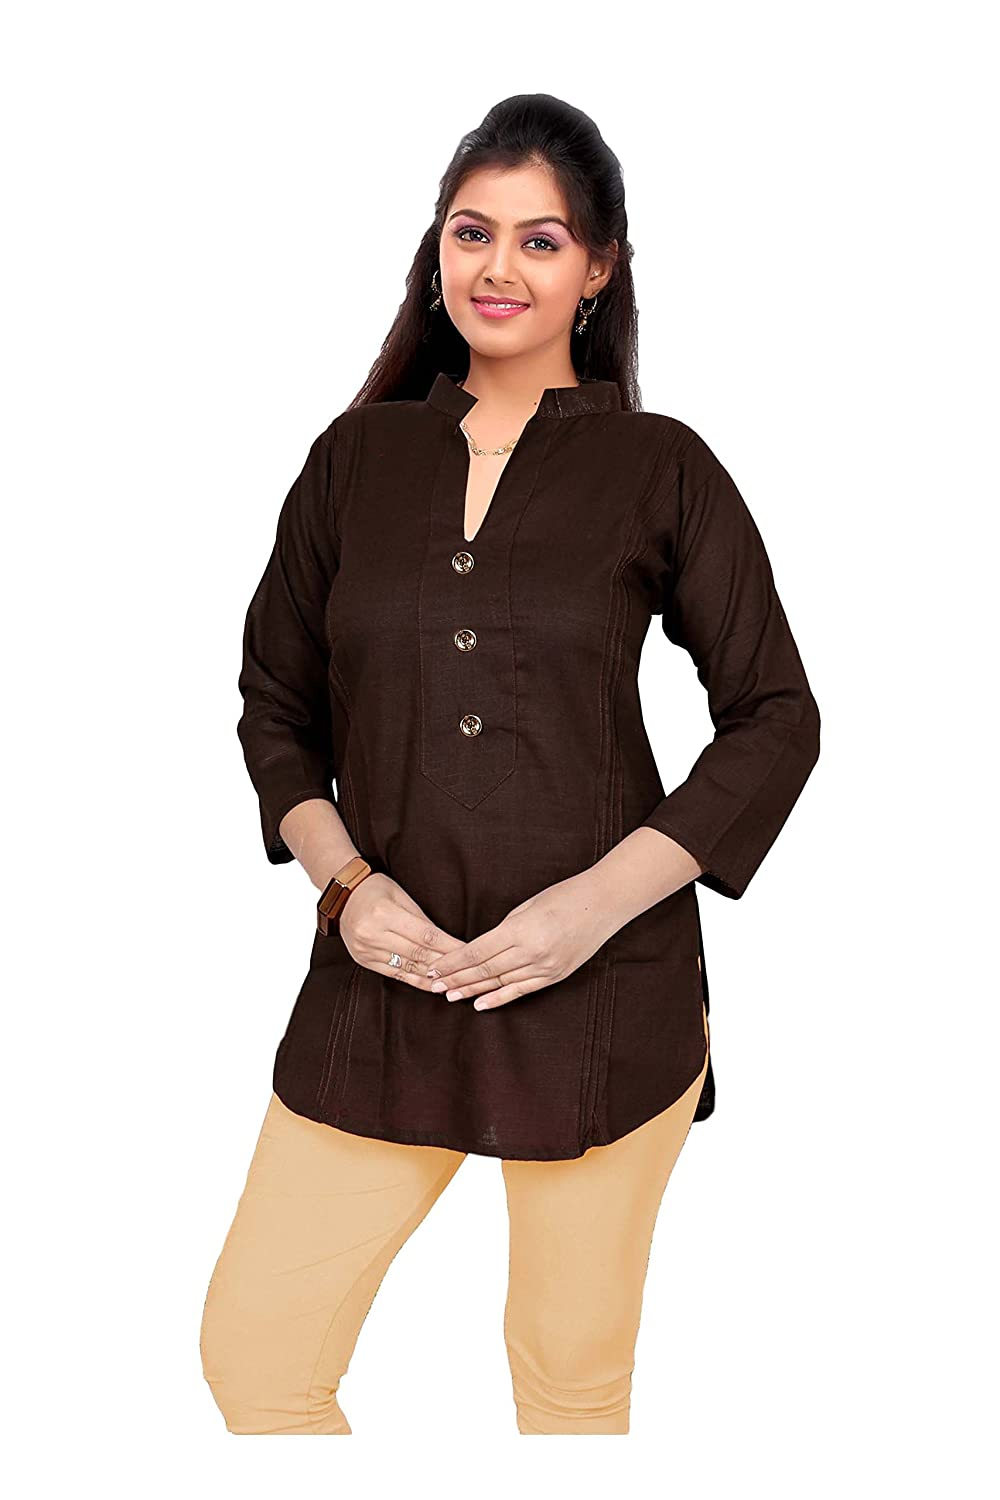 LOOT OFFER - Brand new style kurtis for womens at just Rs 199 only + Free Delivery